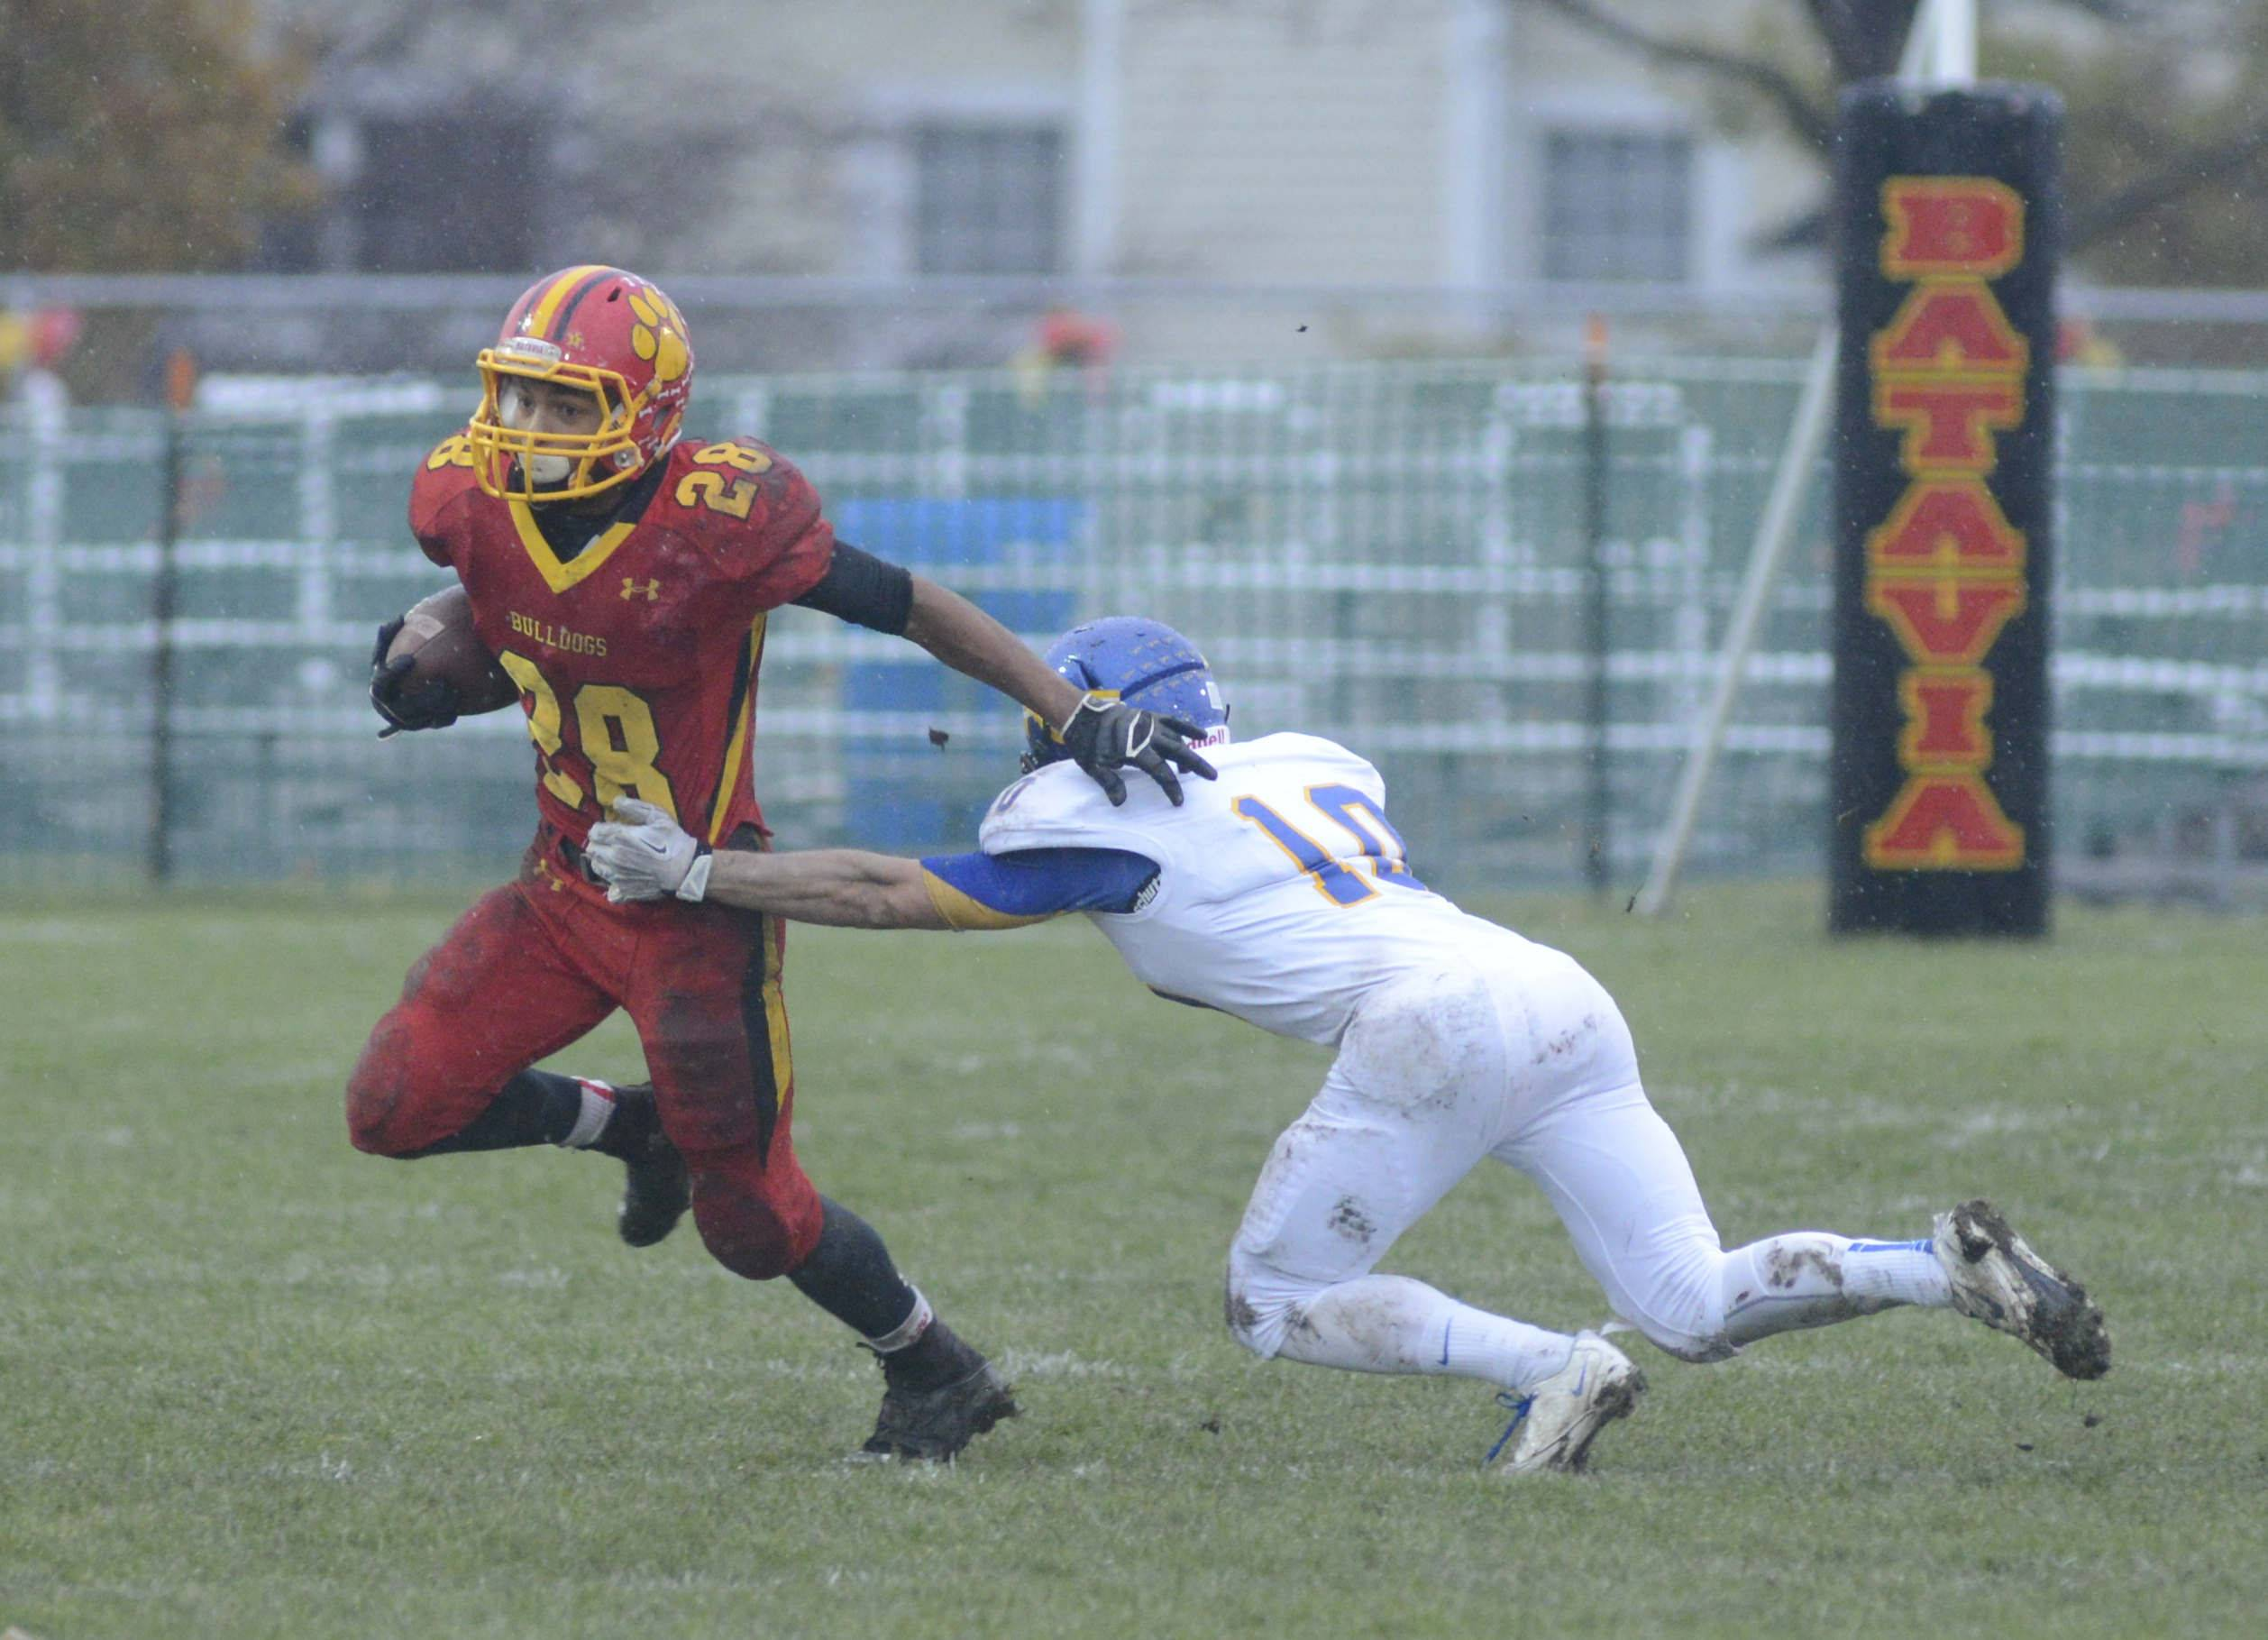 Batavia District 101 is considering borrowing money to do building and grounds work at its schools, including installing artificial turf at the high school stadium.